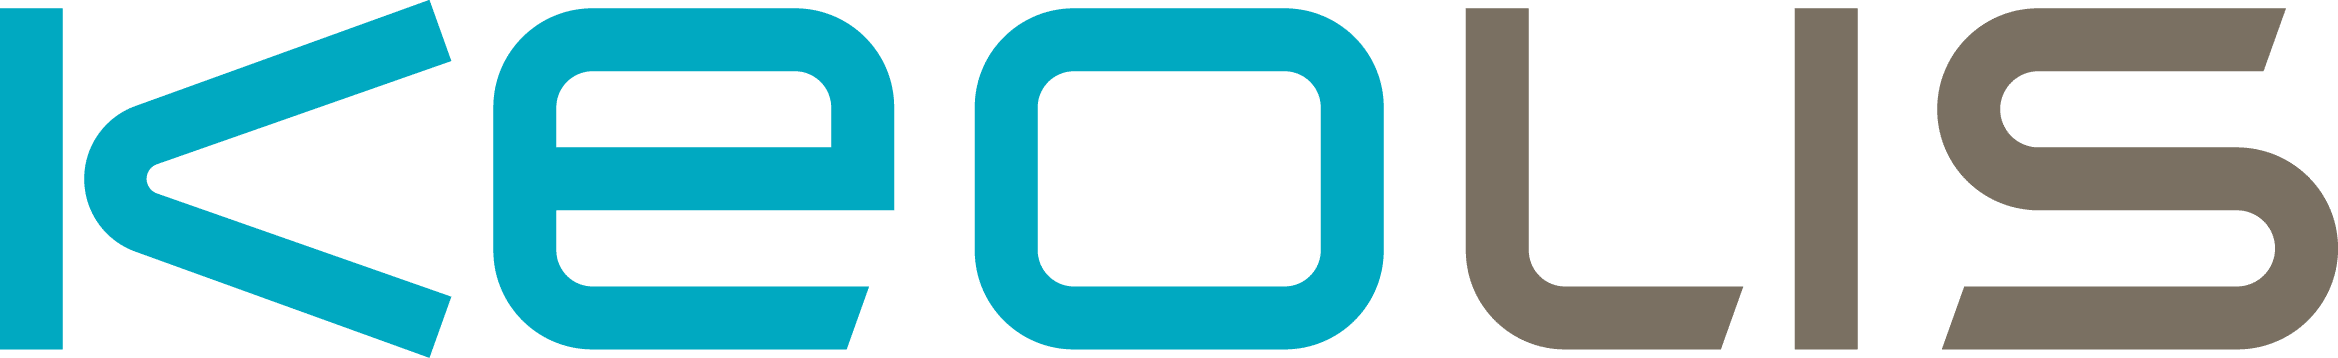 Lumiplan_logo-simple-keolis